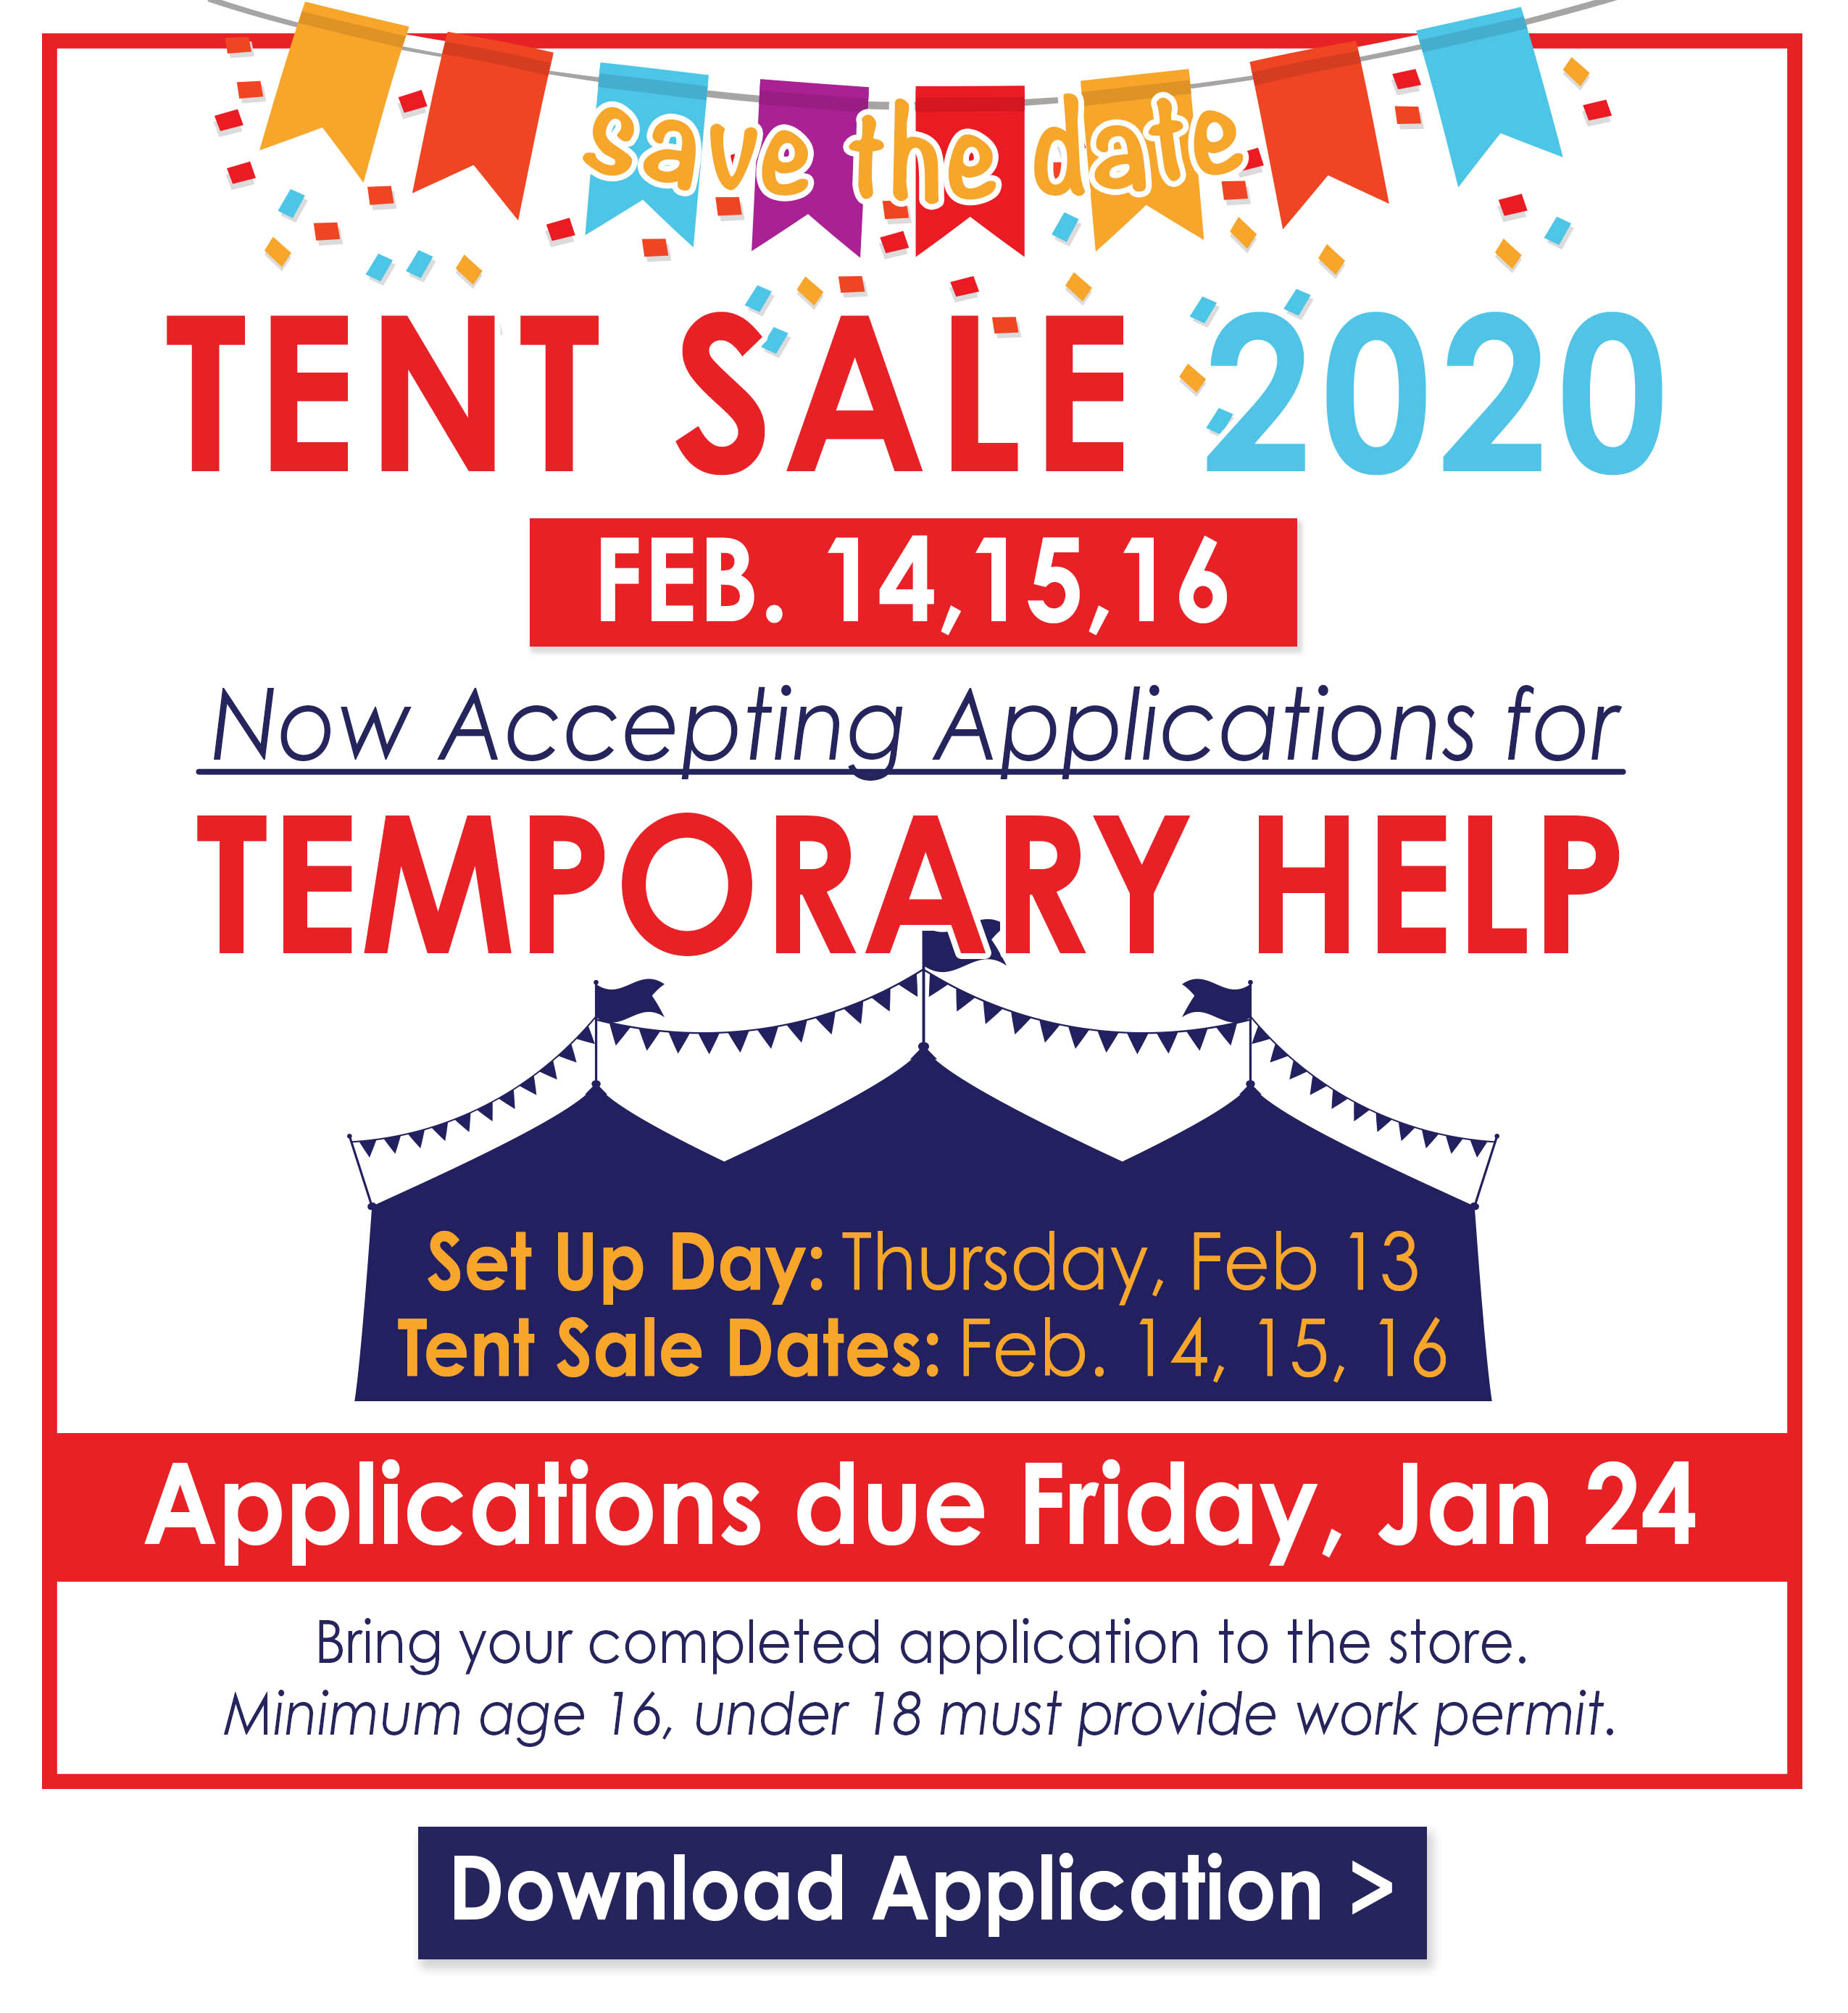 Download the Tent Sale Temp Application Now!